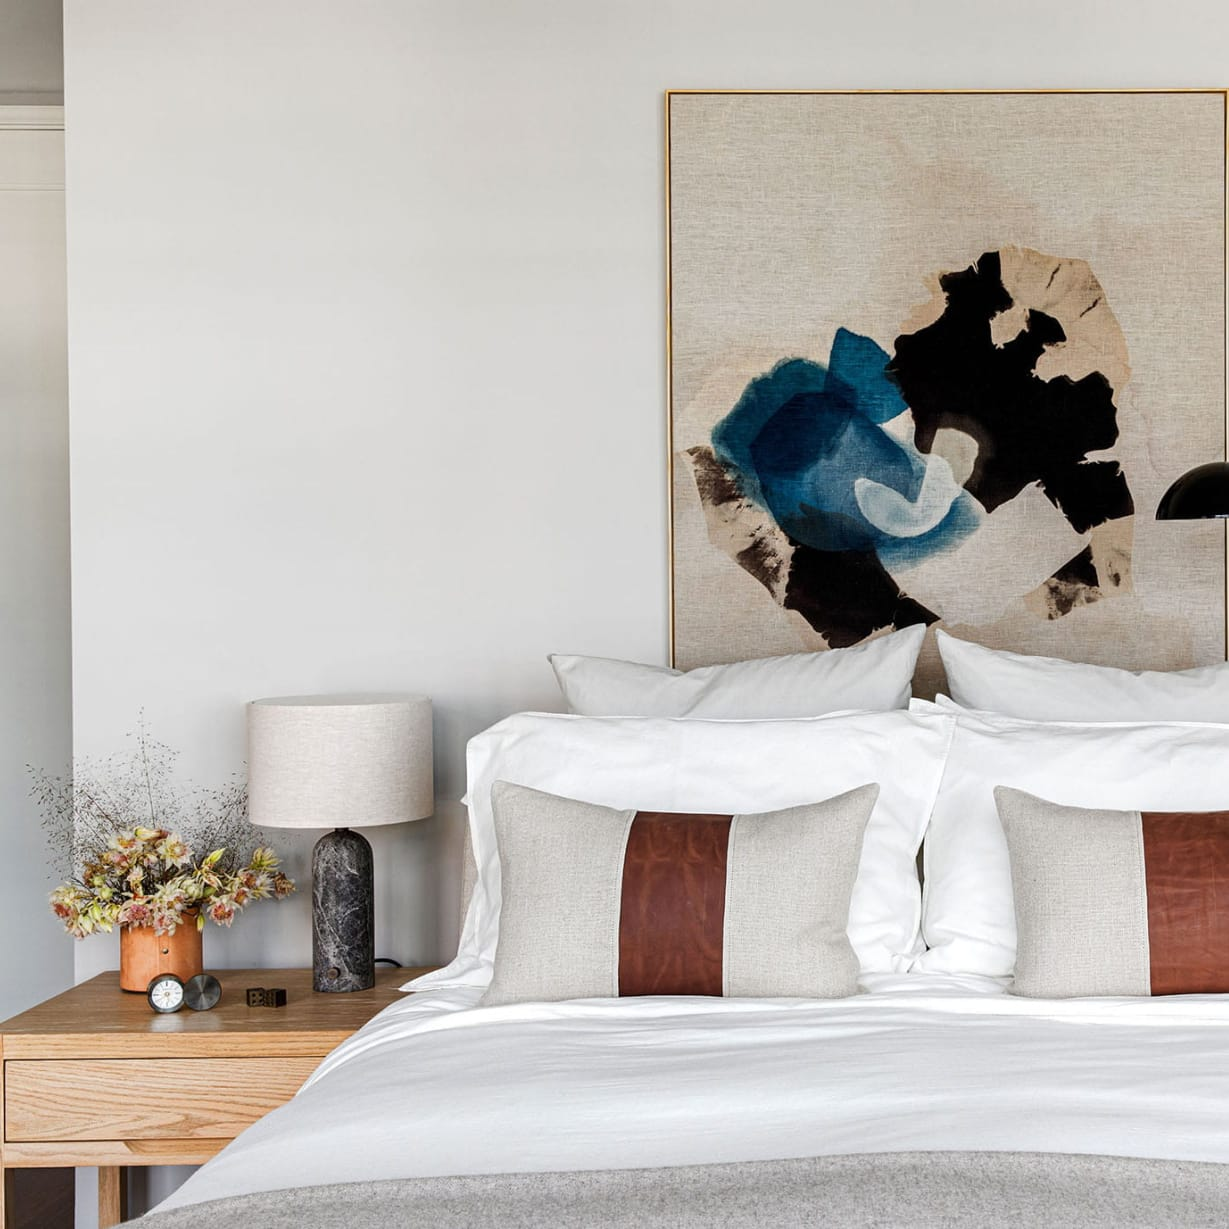 framed art above bed